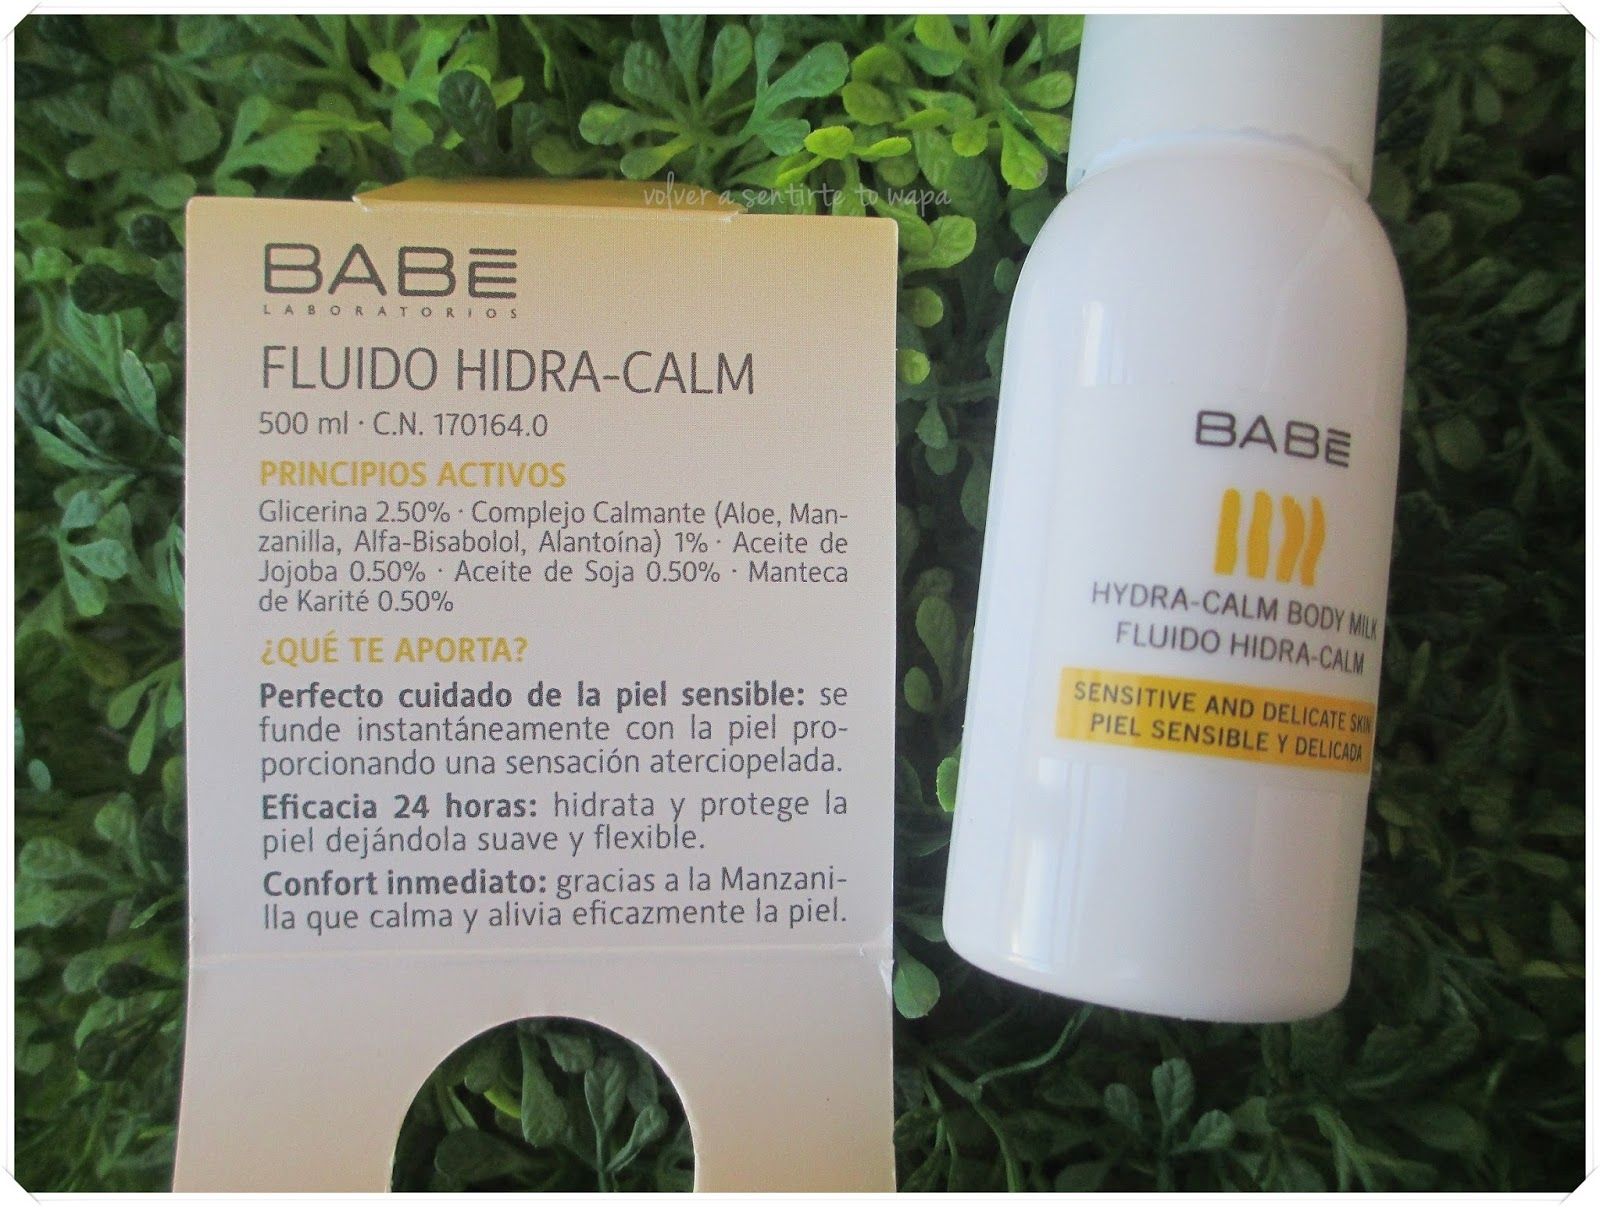 Hidra-Calm Body-Milk de Laboratorios Babè